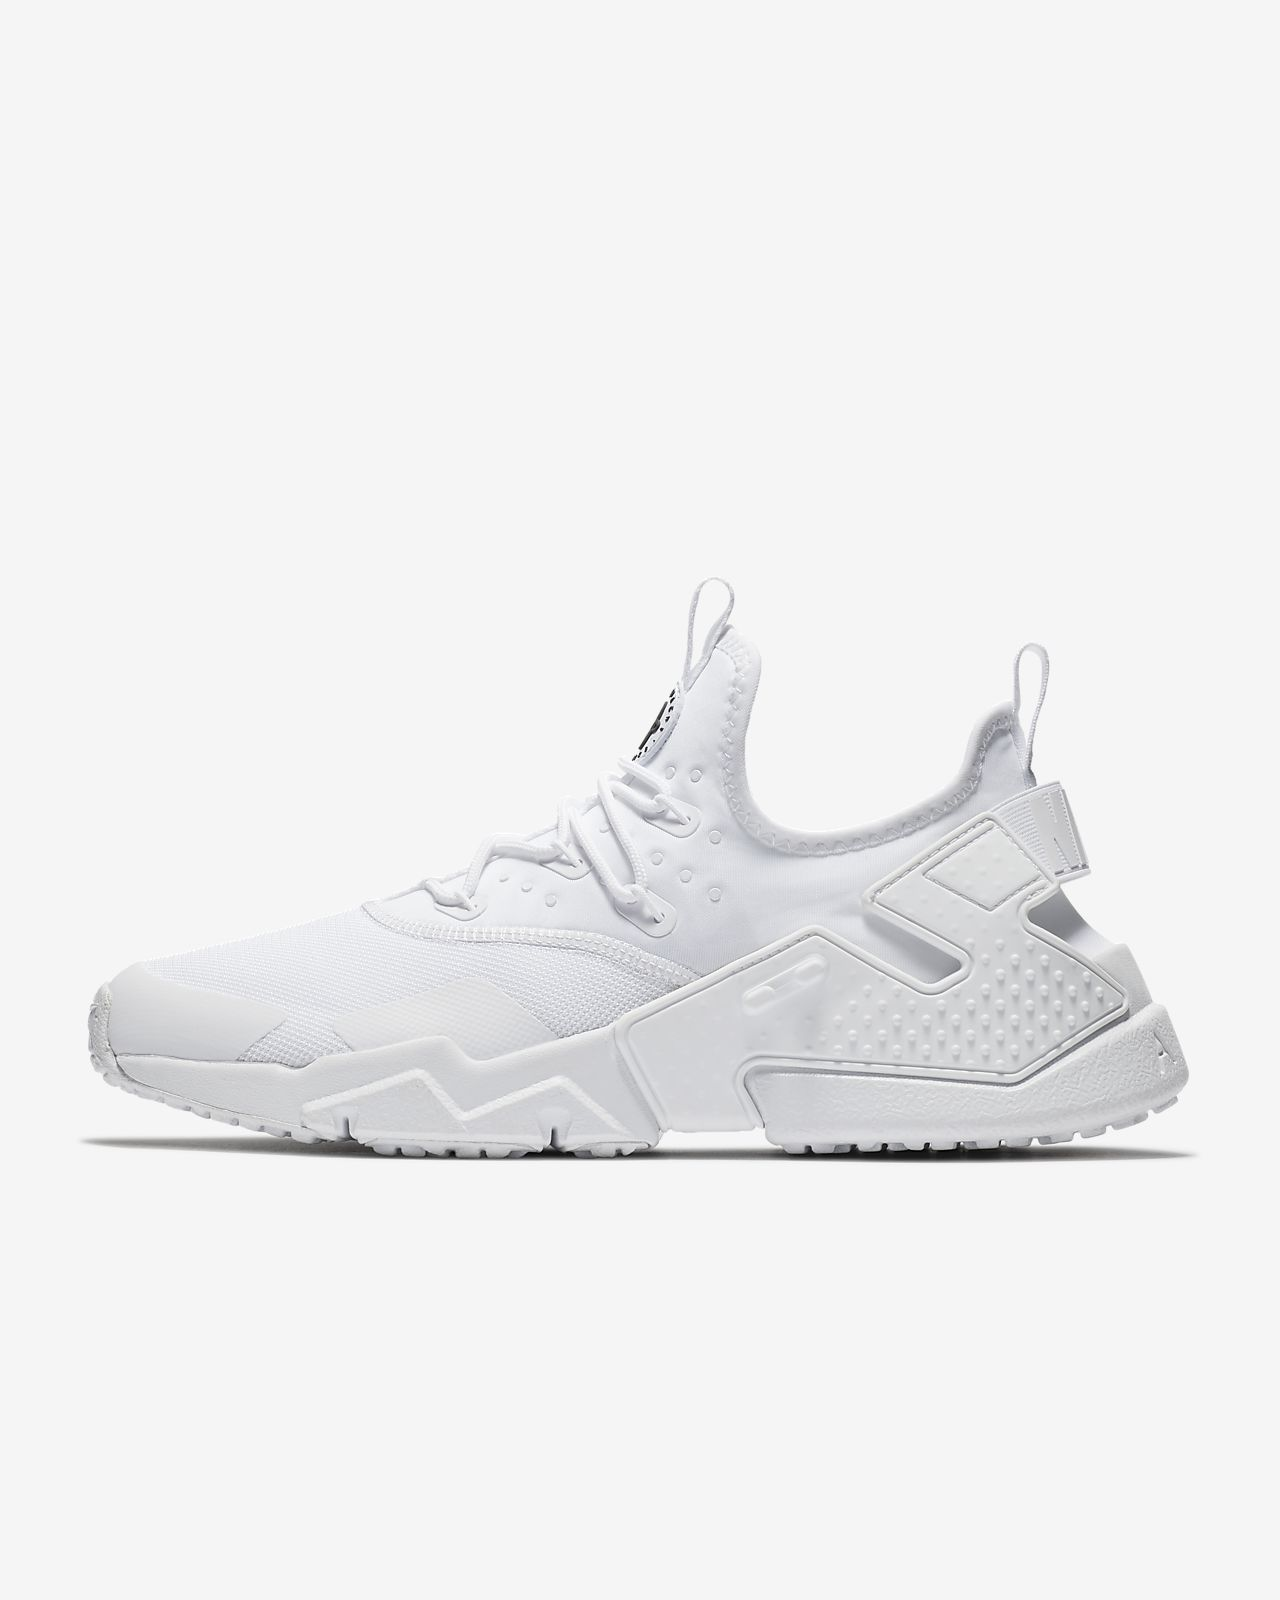 official photos 4672b f461f ... Nike Air Huarache Drift Men s Shoe